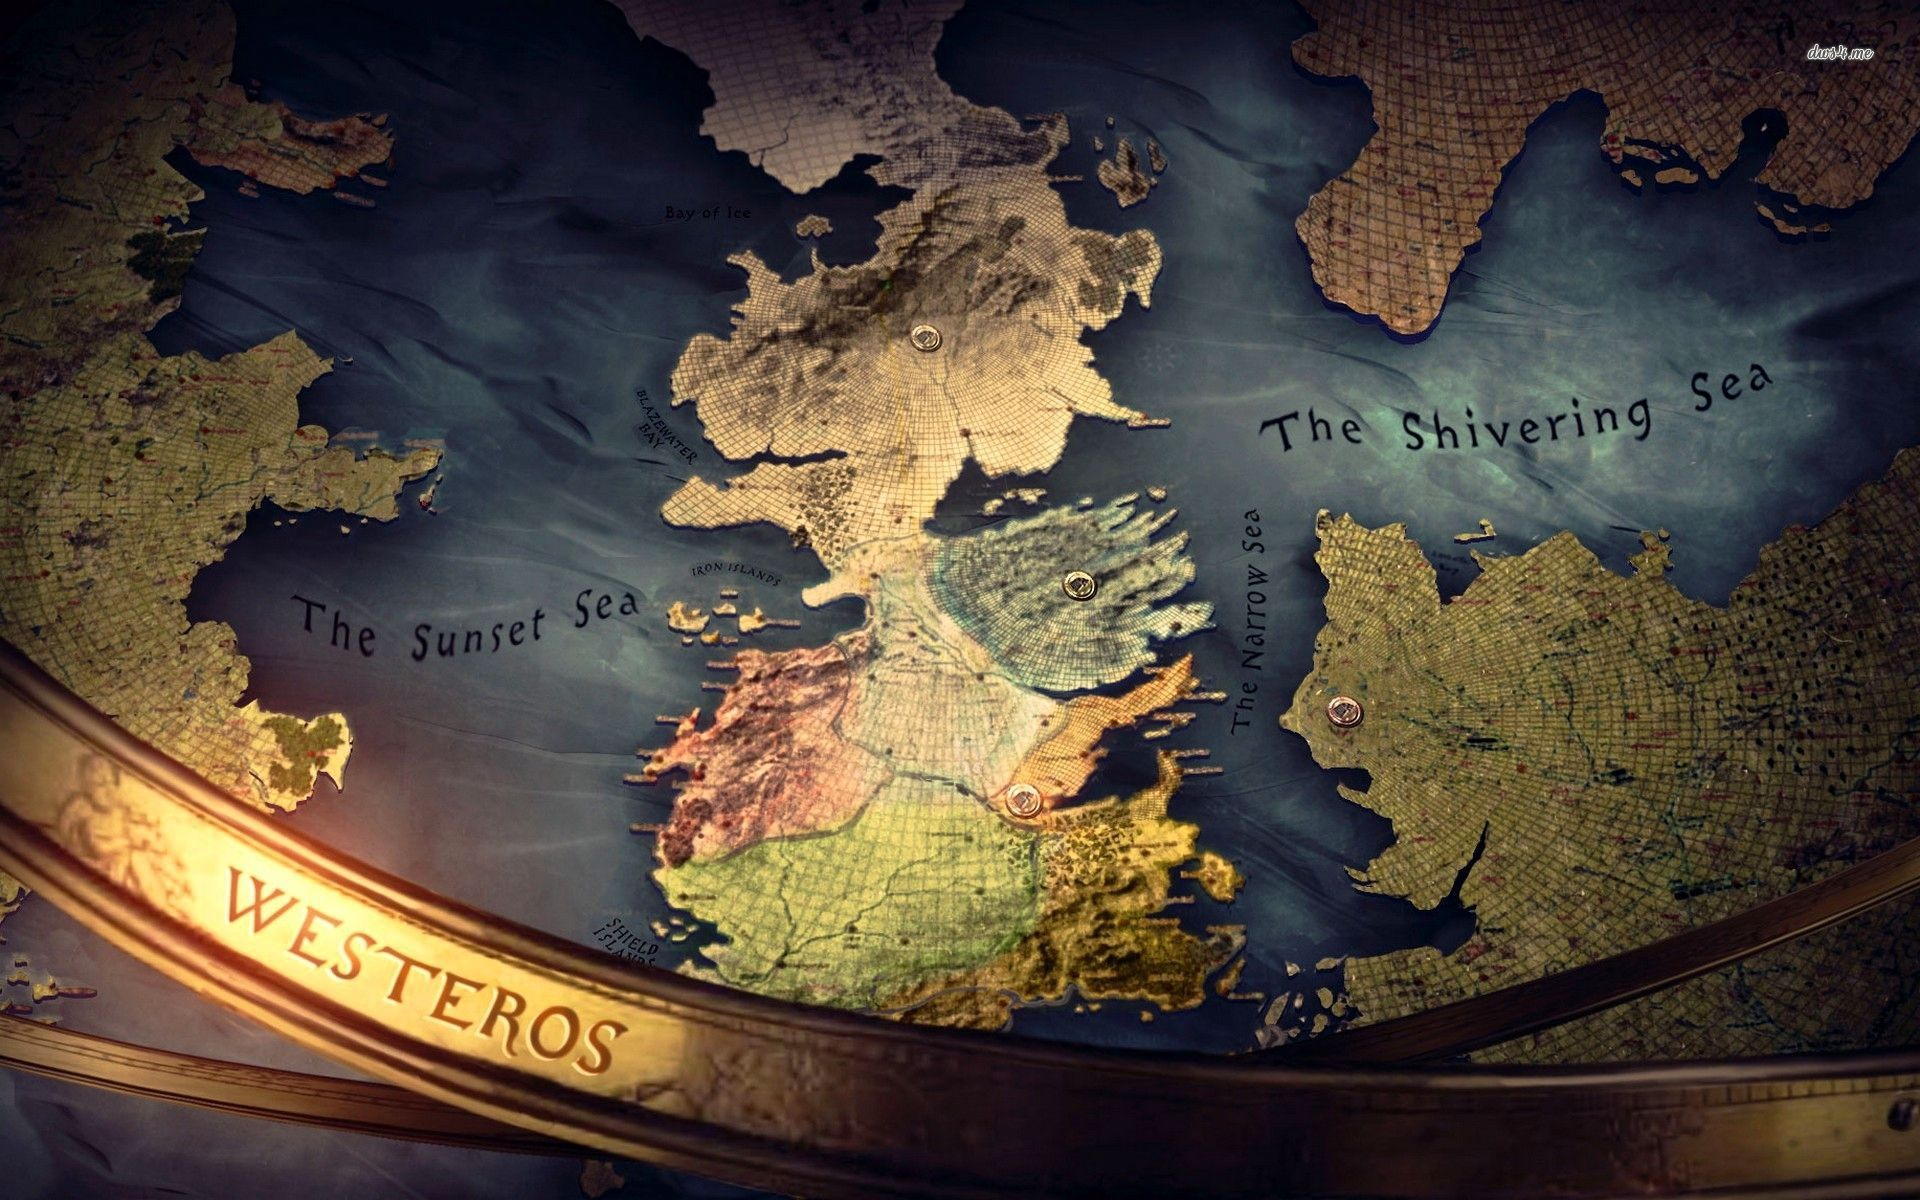 4k Ultra Hd Images Collection Of Game Thrones - Game Of Thrones Far North - HD Wallpaper